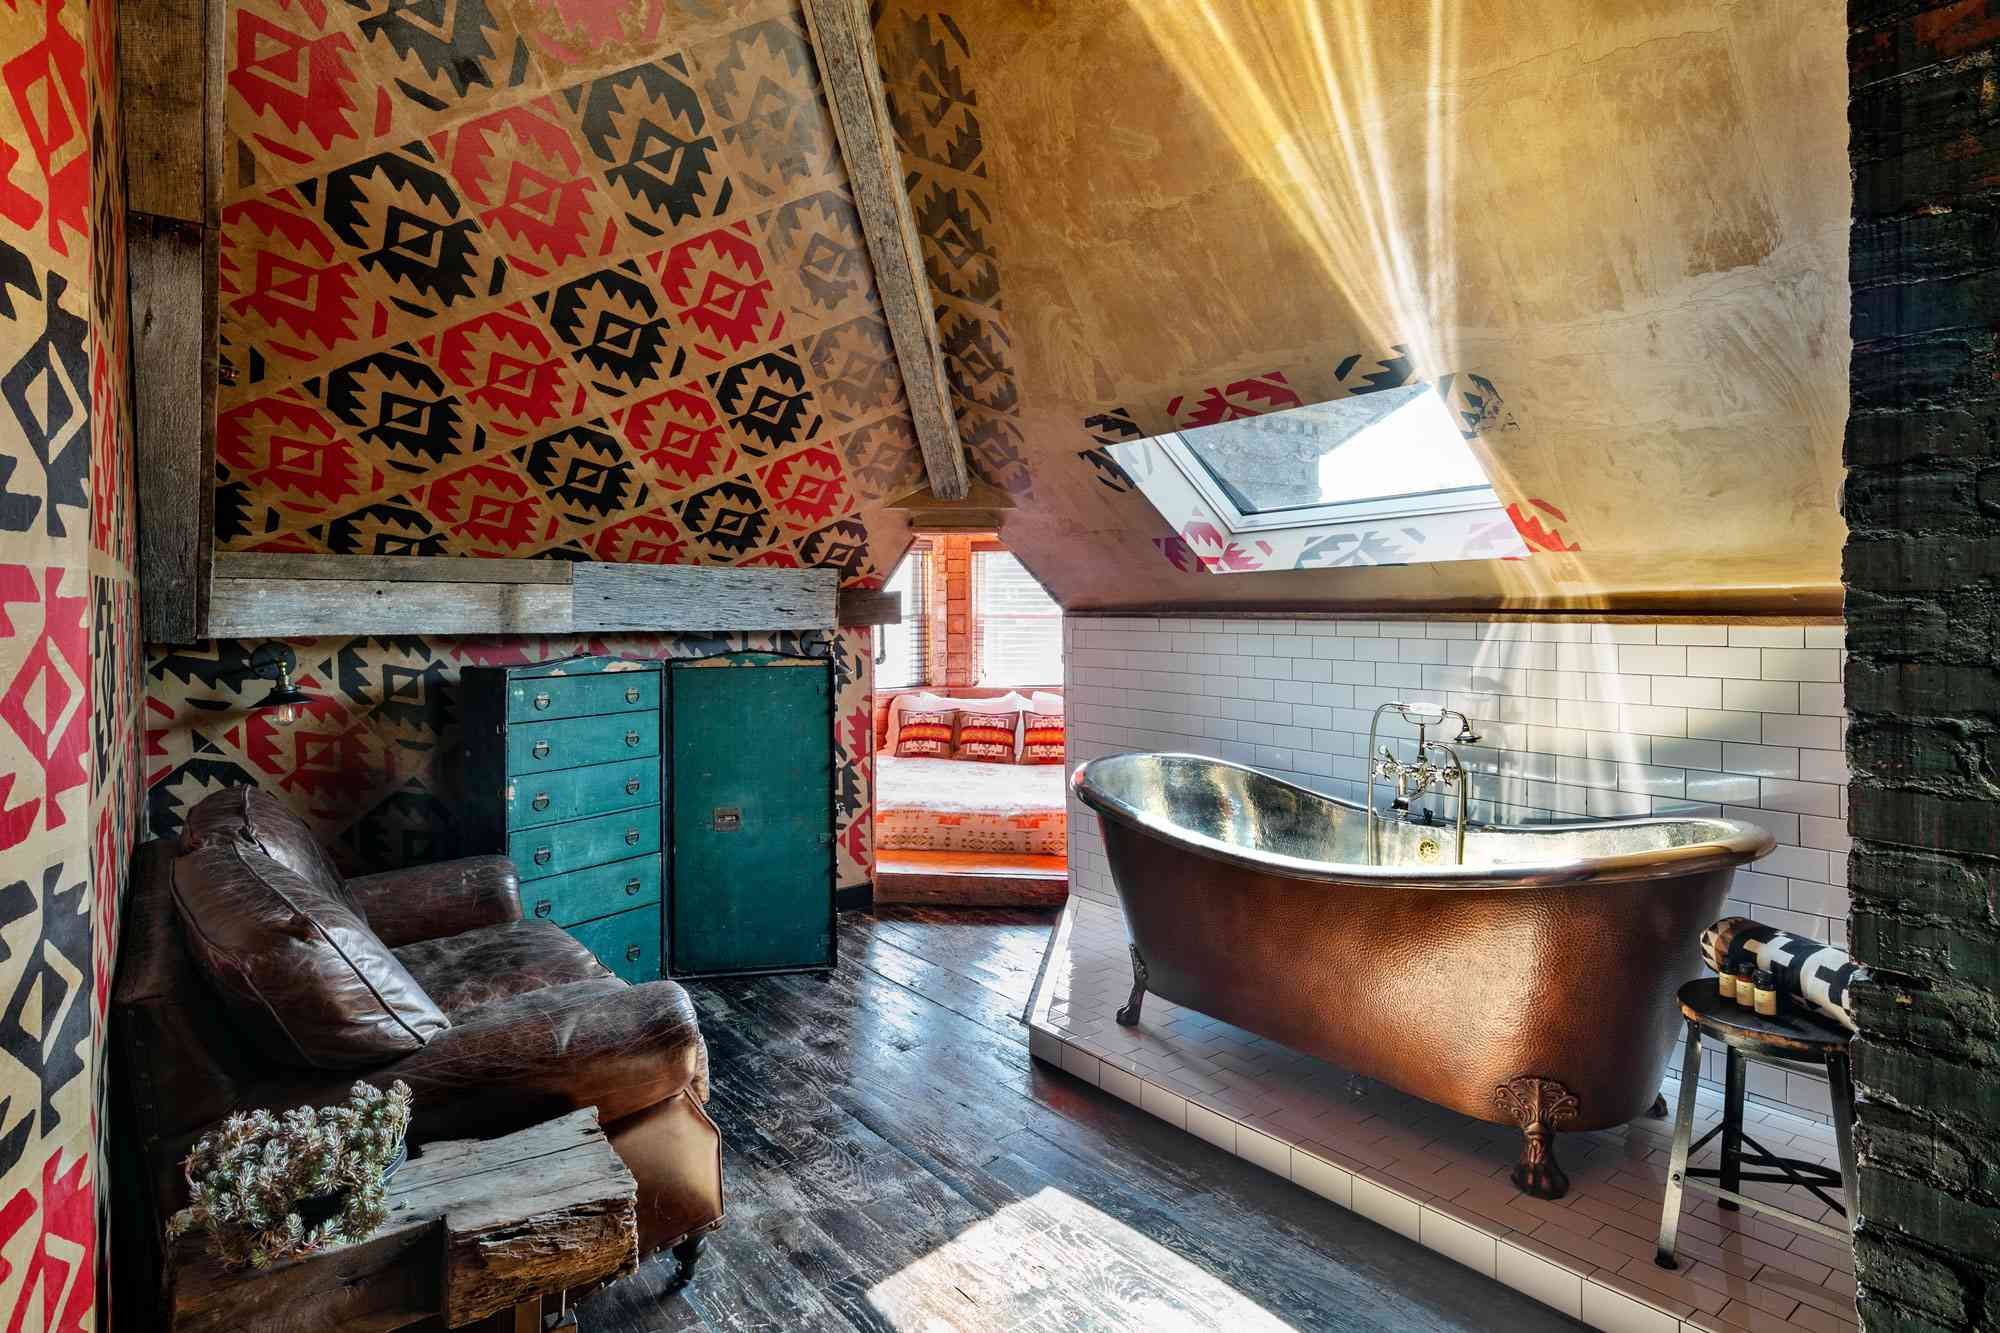 Suite at the Urban Cowboy Bed & Breakfast Nashville with a distressed leather couch in front of a claw foot copper tub with dark hardwood floors